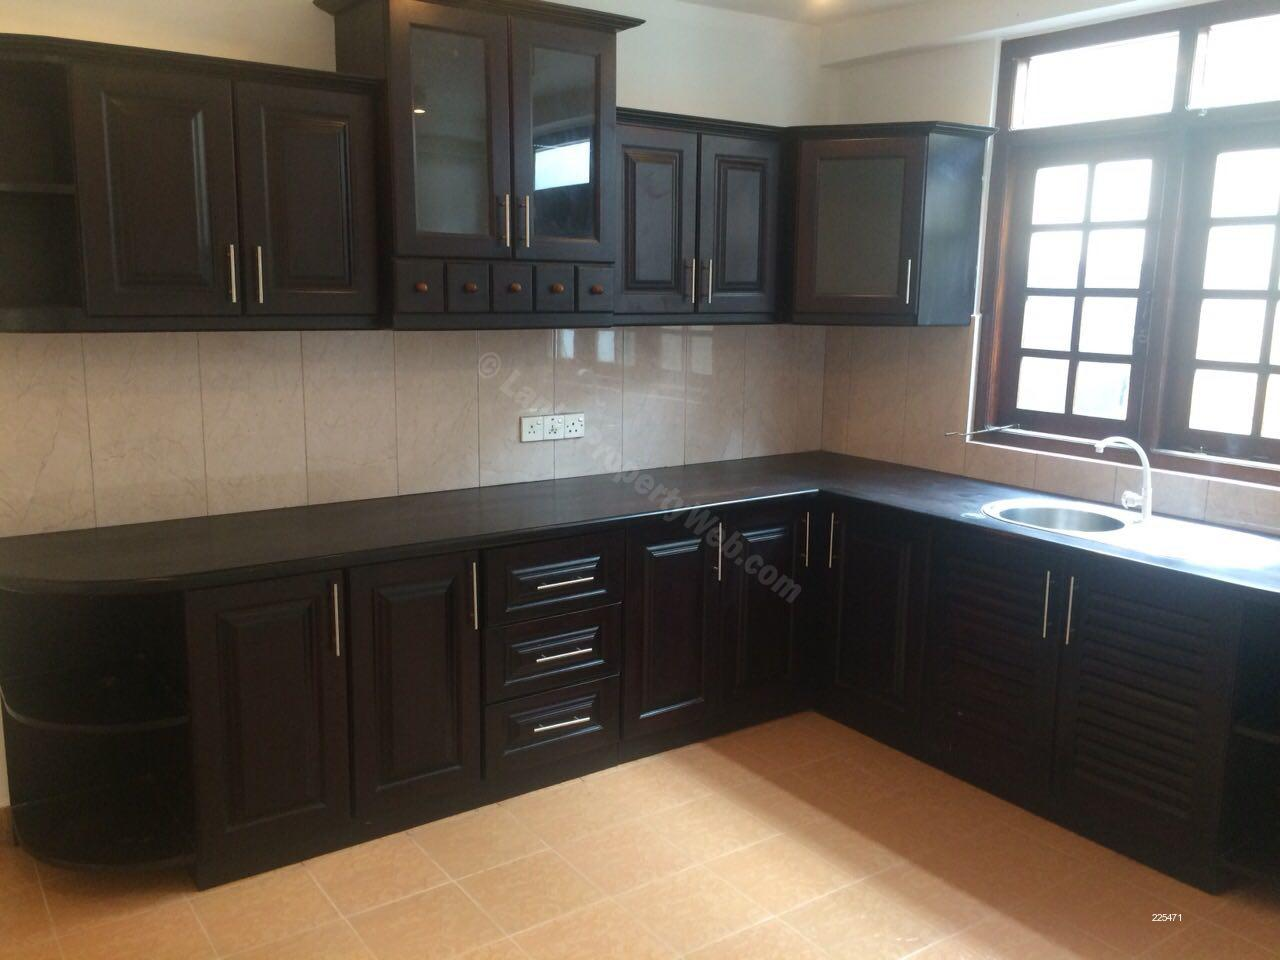 House for sale in Nugegoda